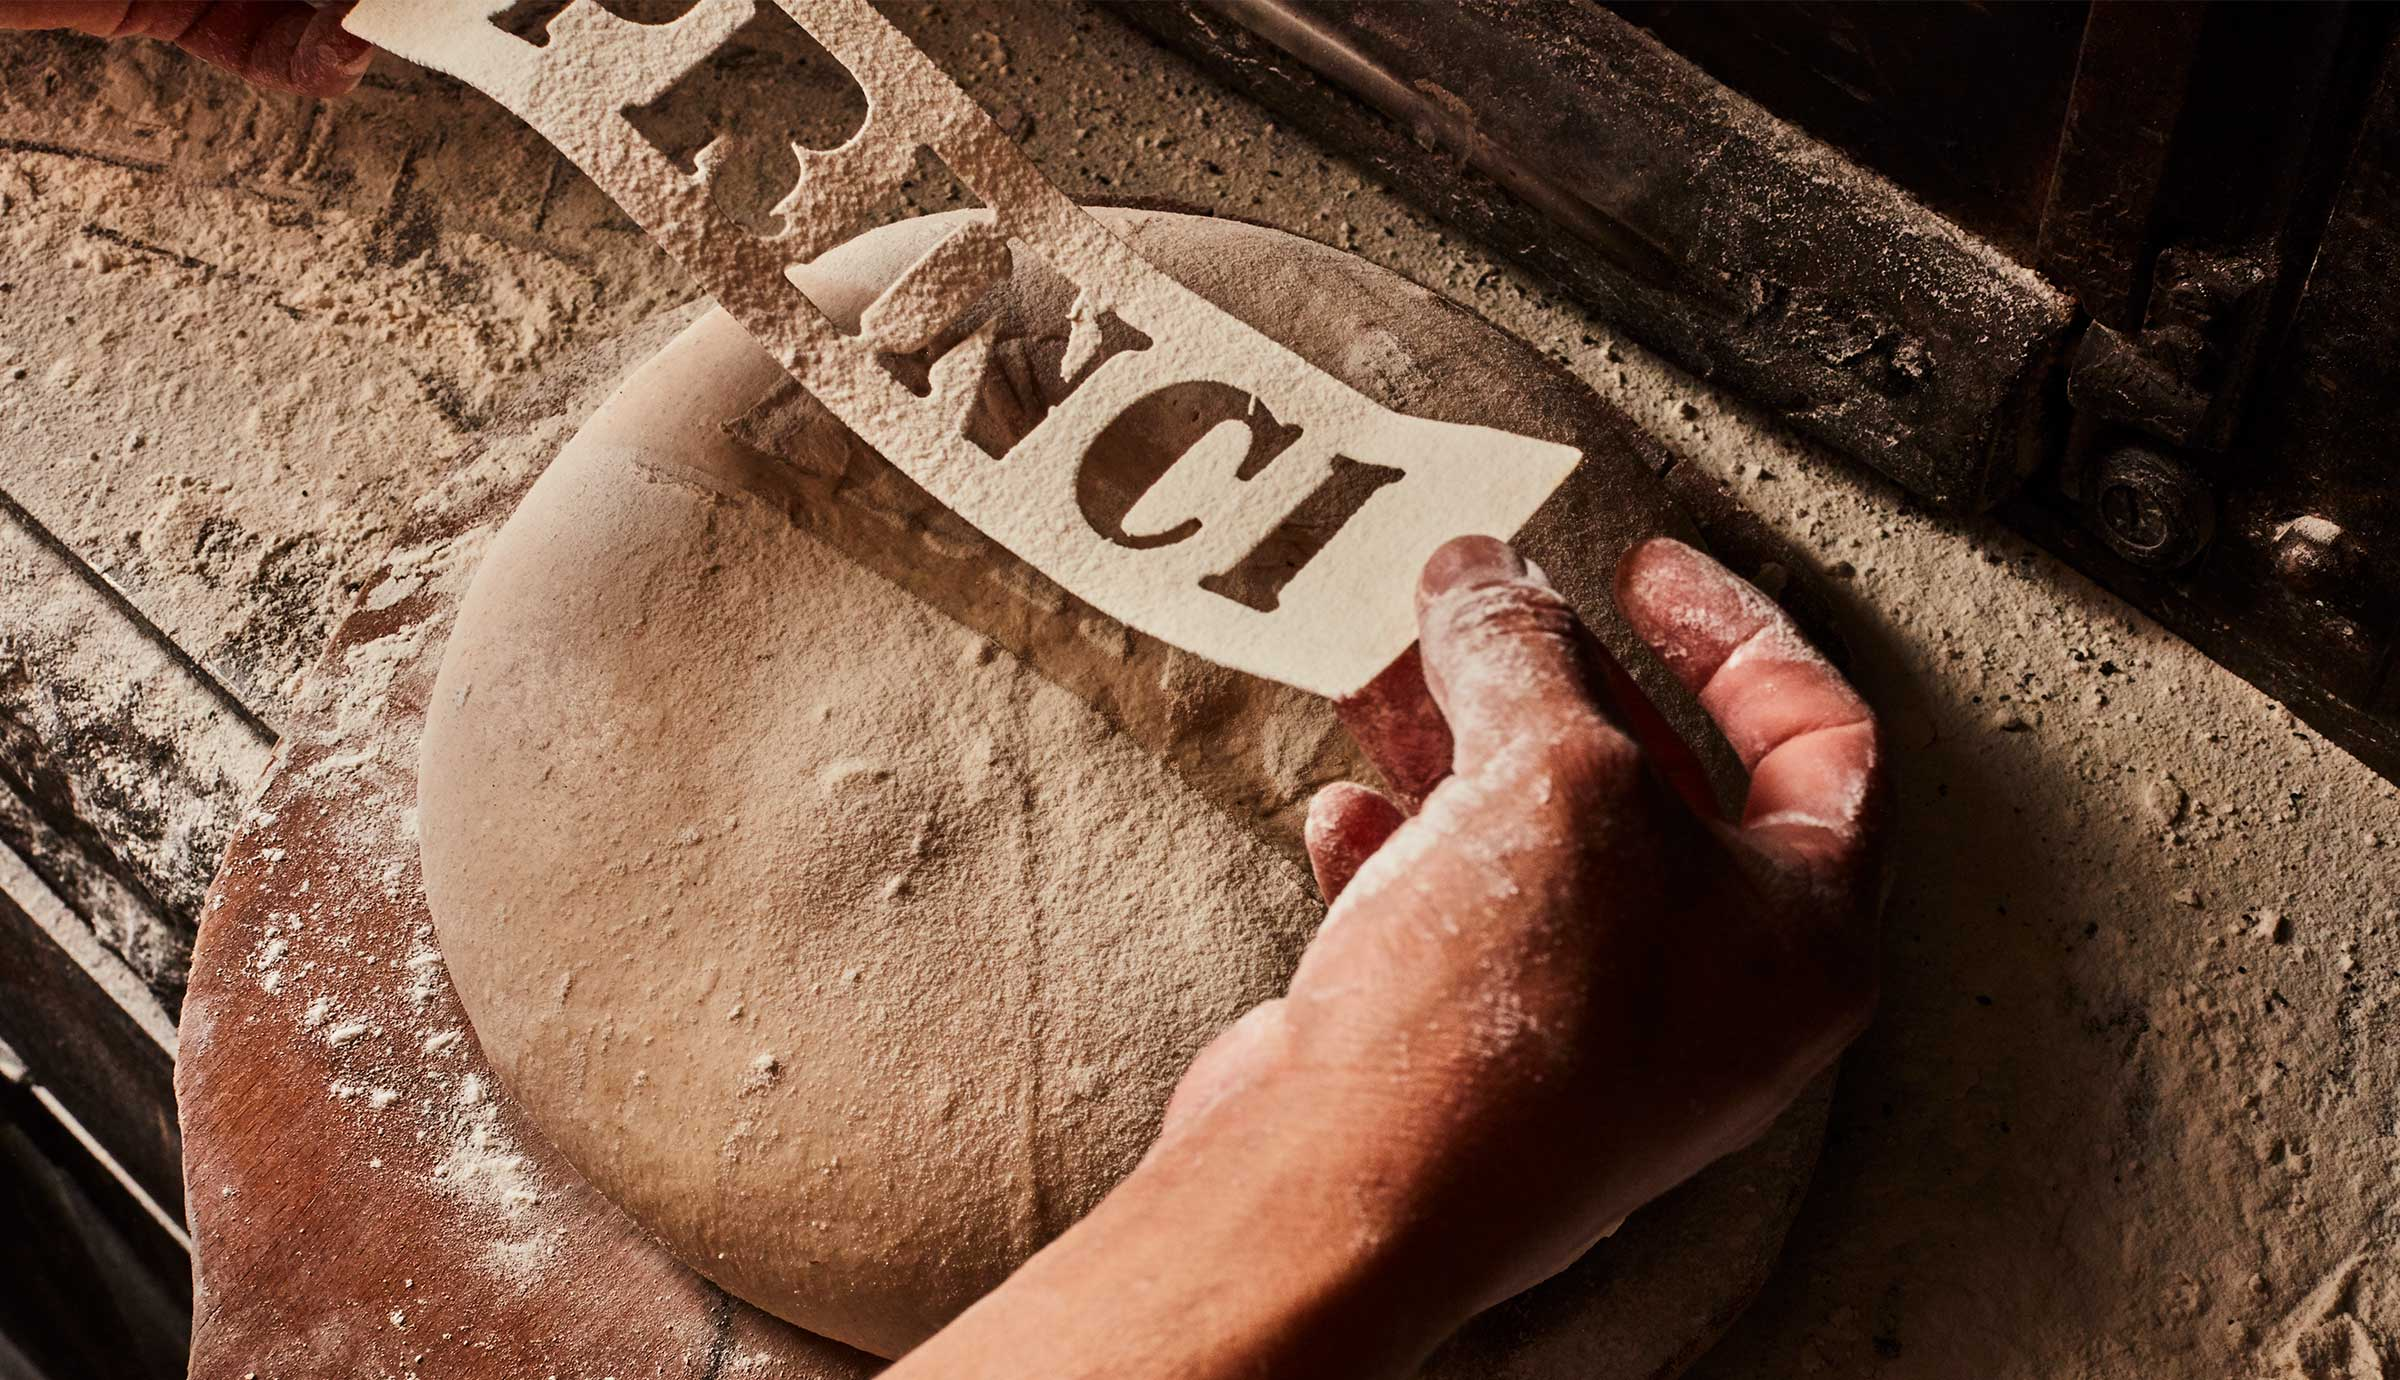 A stencil that reads Princi is held over bread dough